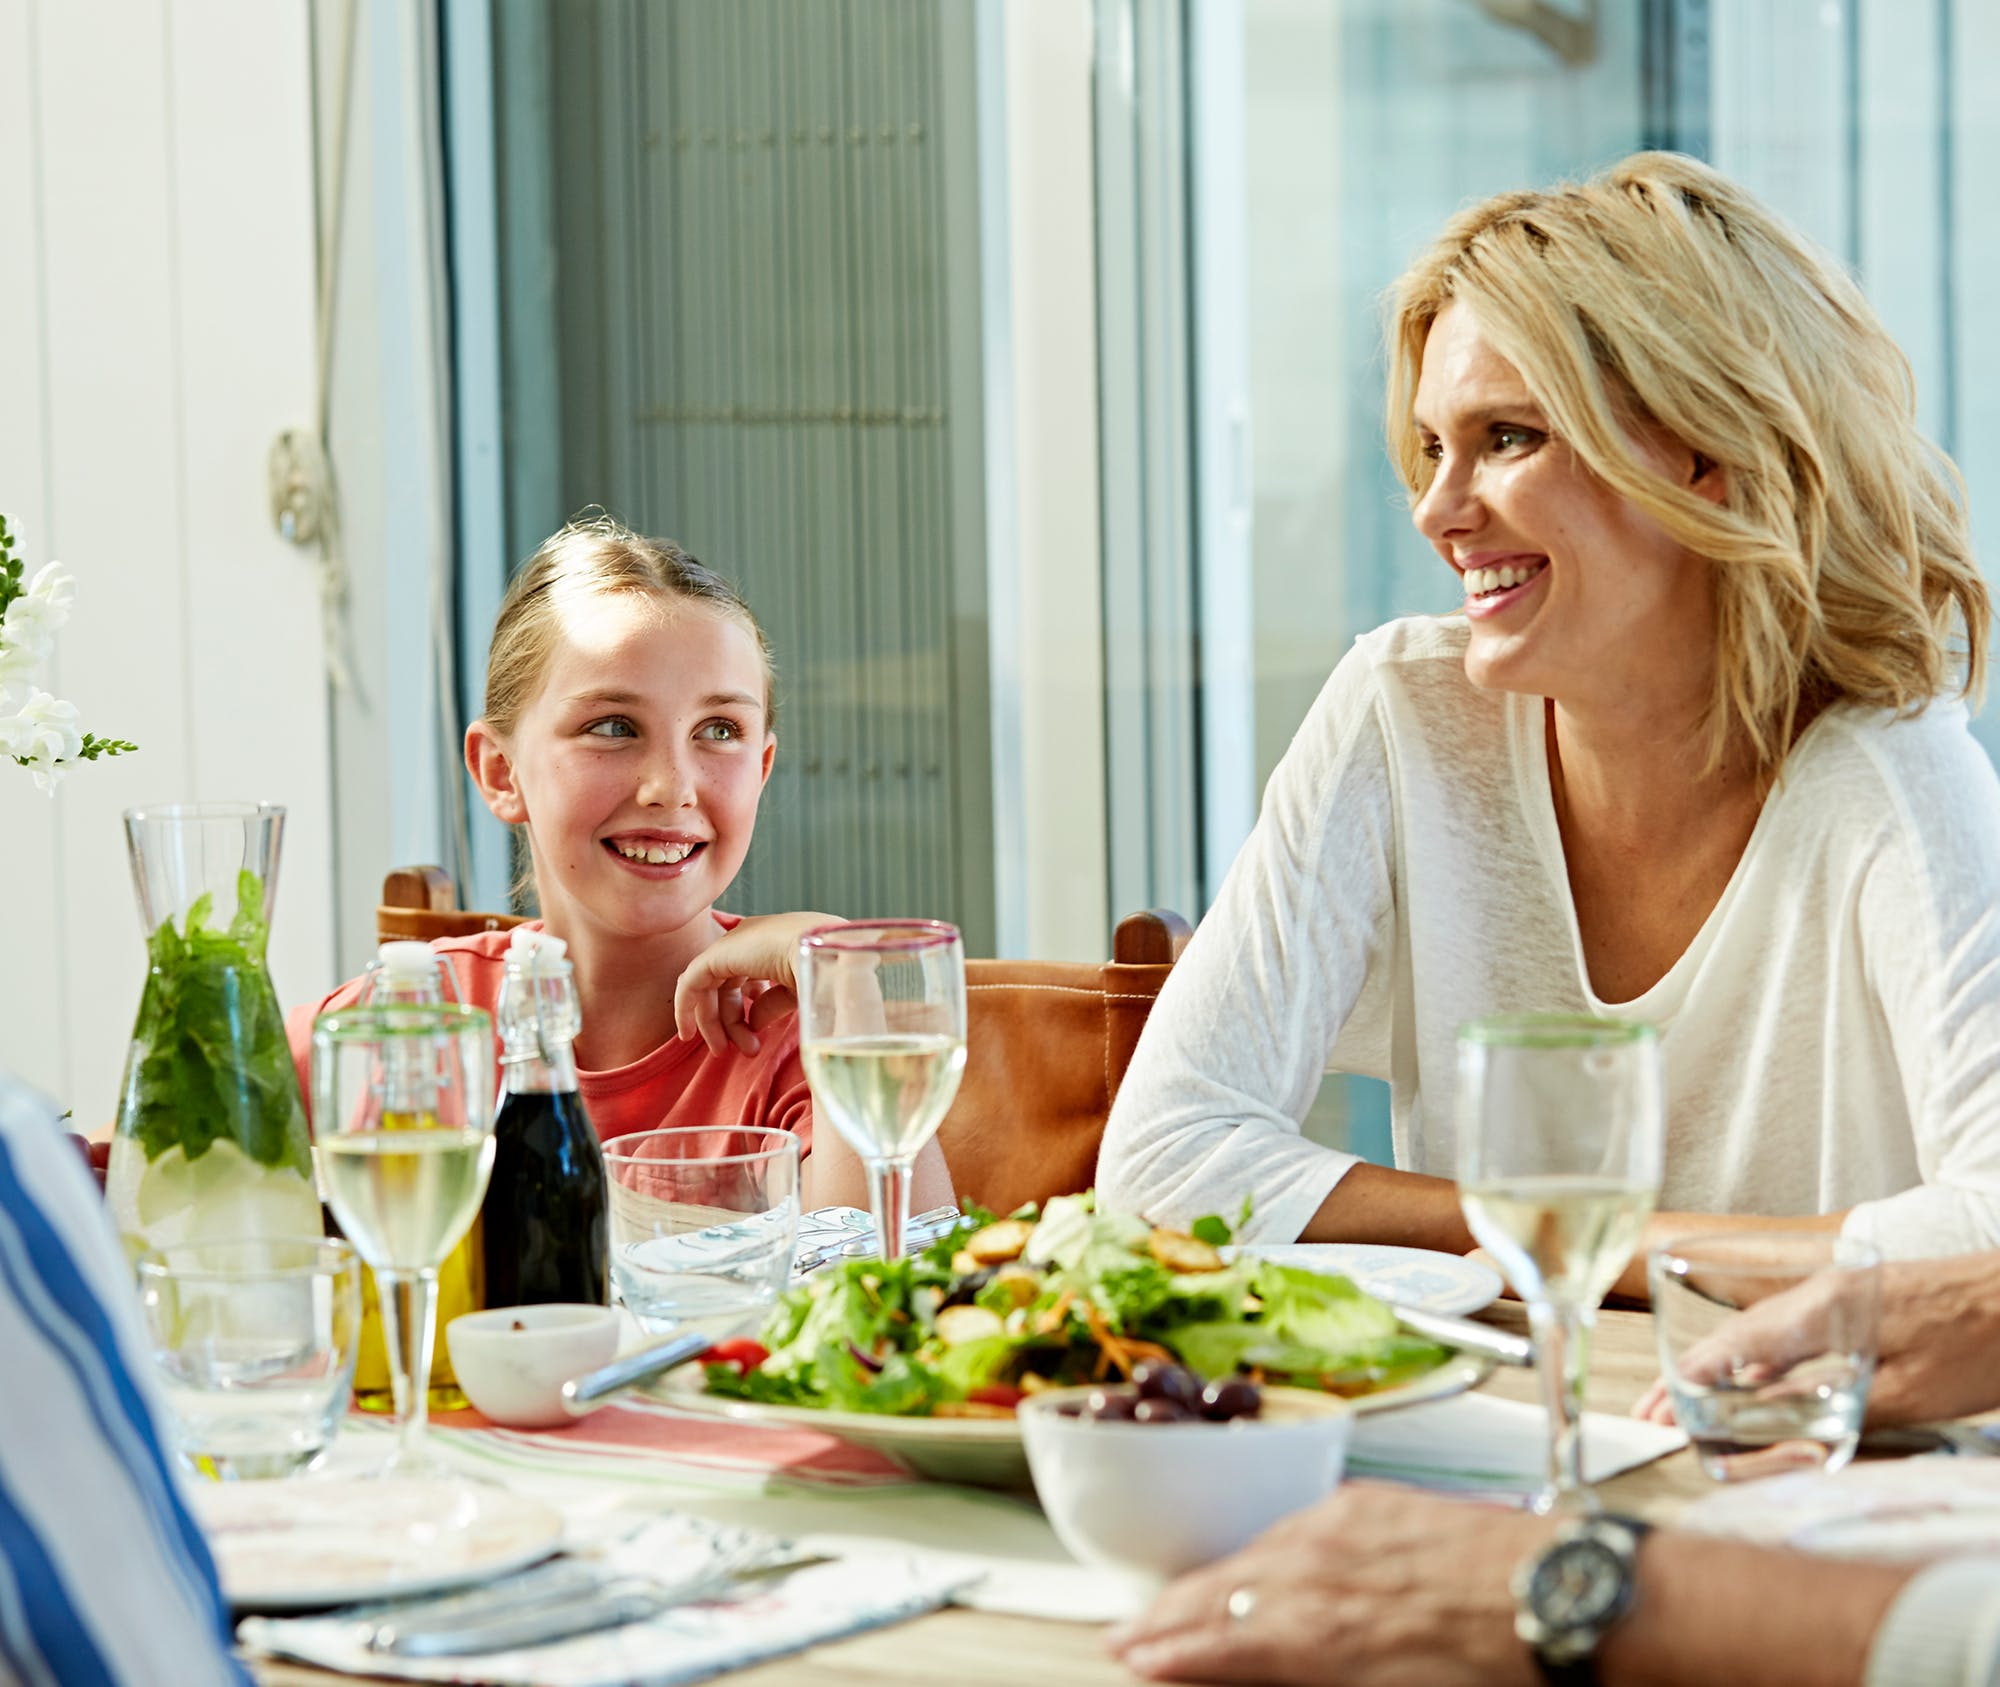 Low-carb meals for families